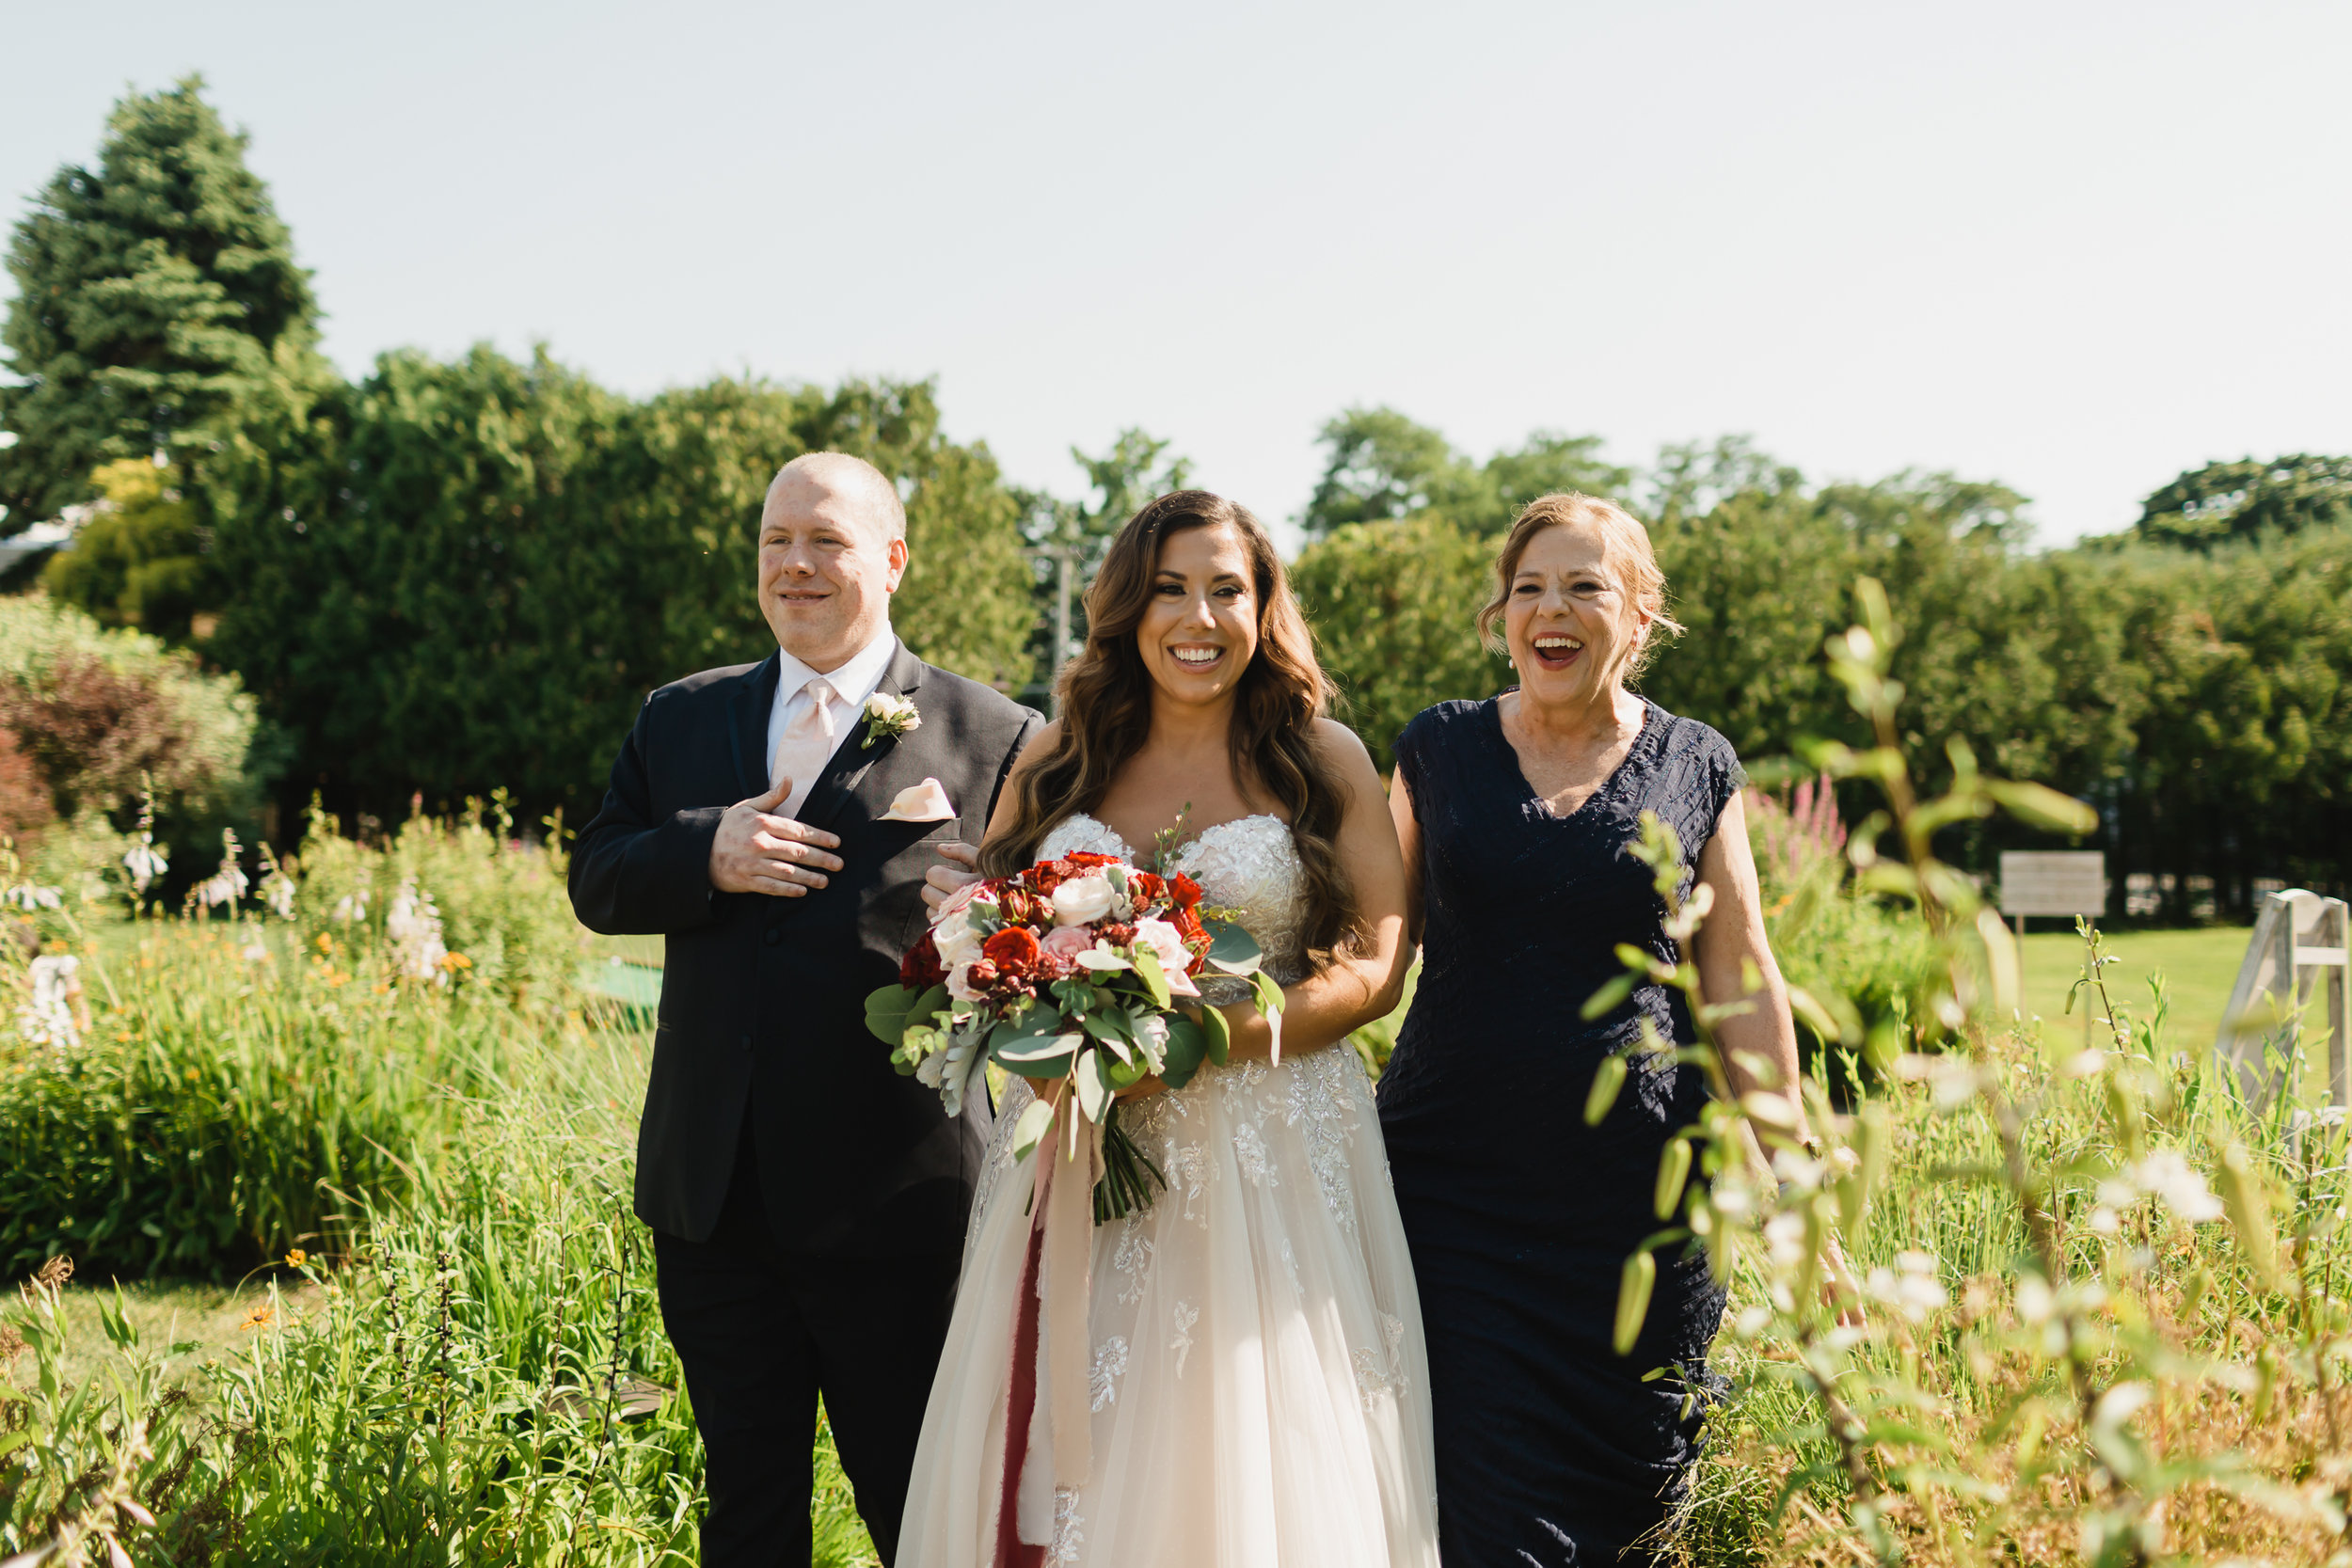 Gianna Keiko Atlanta NYC California Wedding Photographer_Sneak Peek-48.jpg